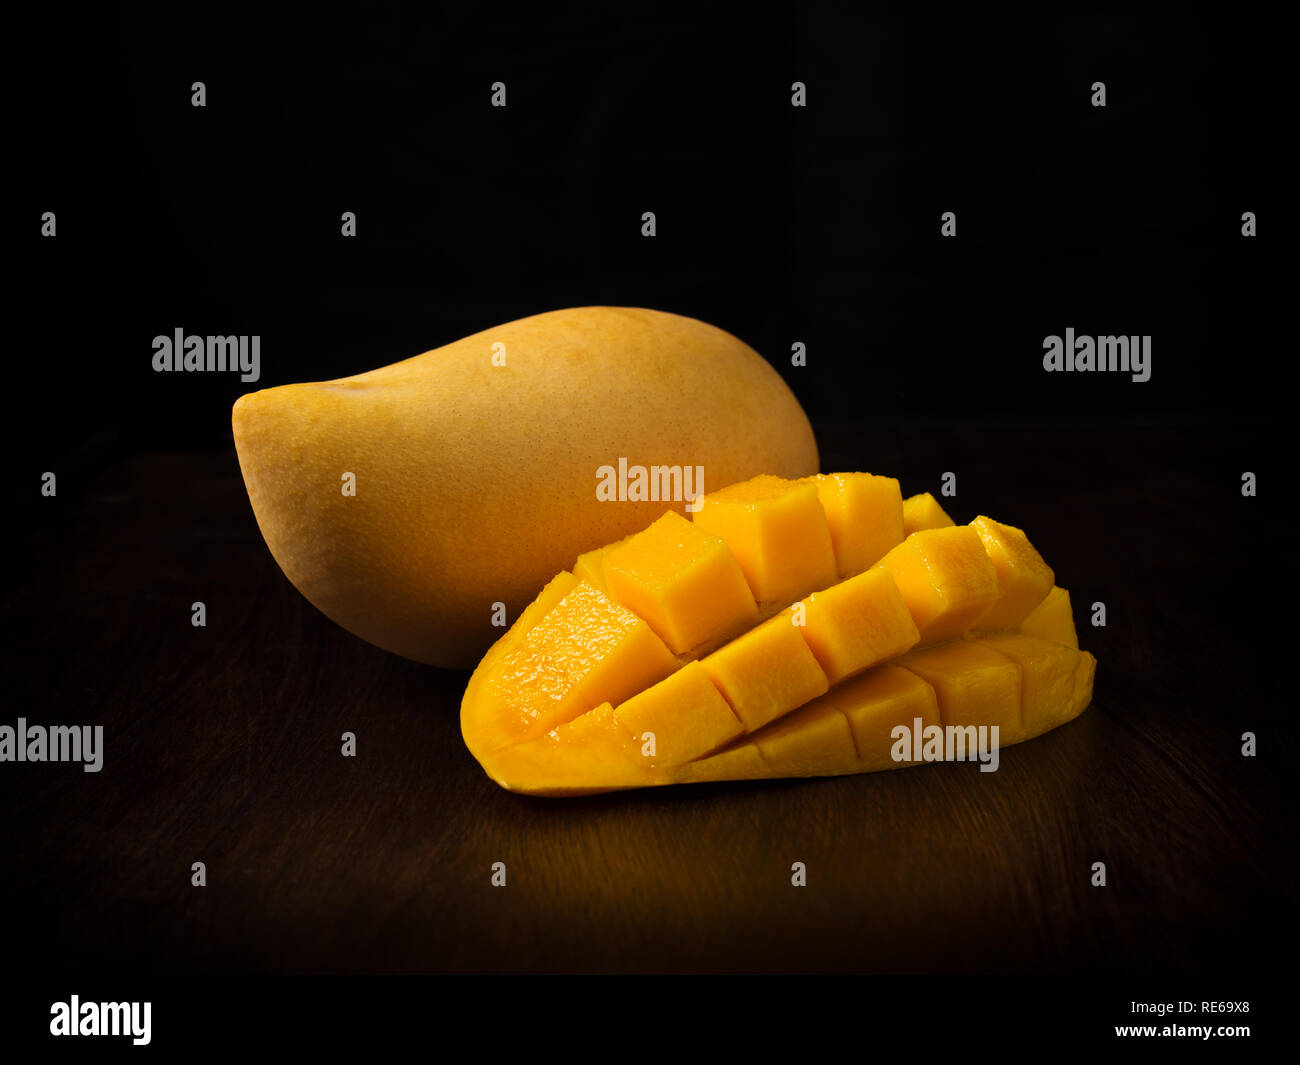 Side view image of close up appetizing yellow mango fruit and mango cubes on wooden table on black backbround Stock Photo